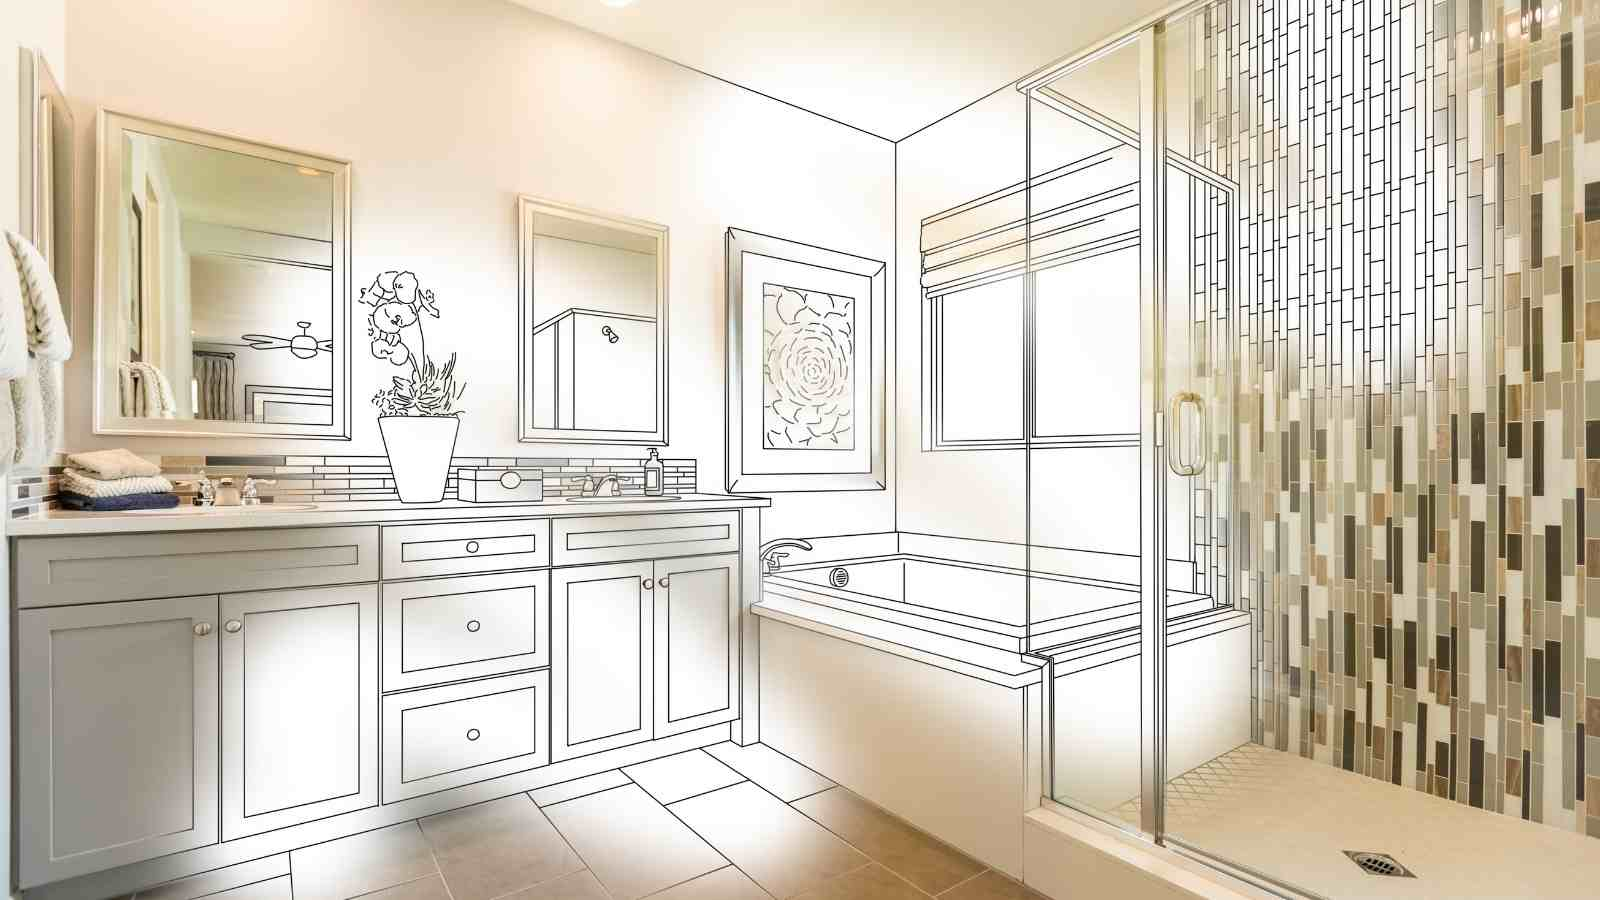 Bathroom Ideas: 35 Amazing Bathroom Remodel DIY Ideas That Give A Stunning